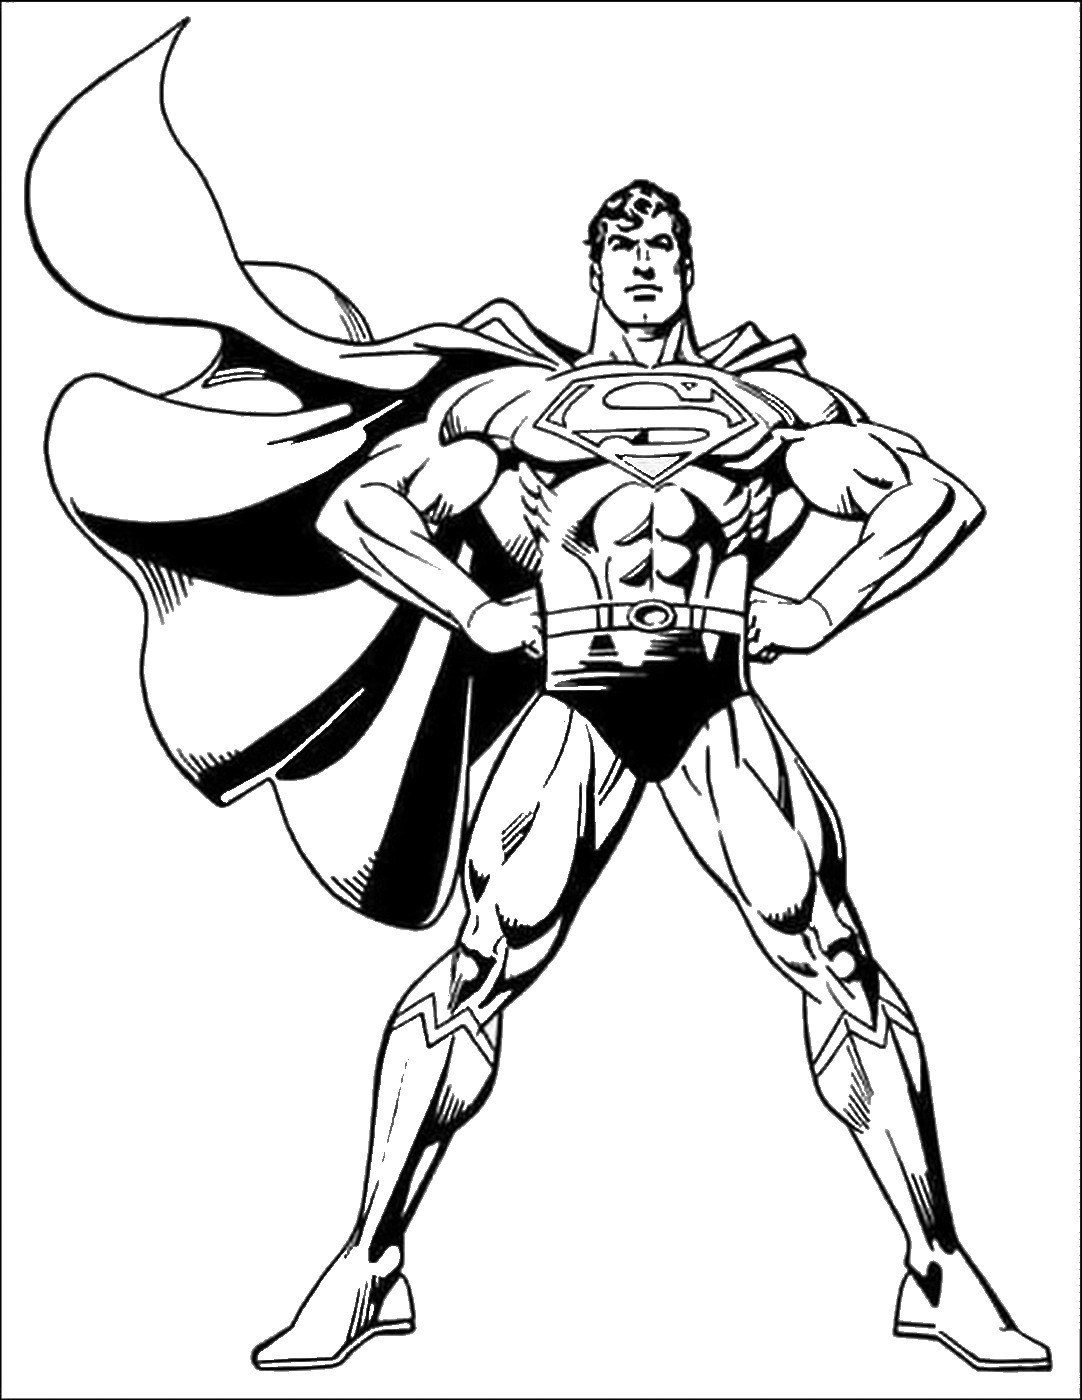 superman coloring images superman coloring pages free printable coloring pages superman images coloring